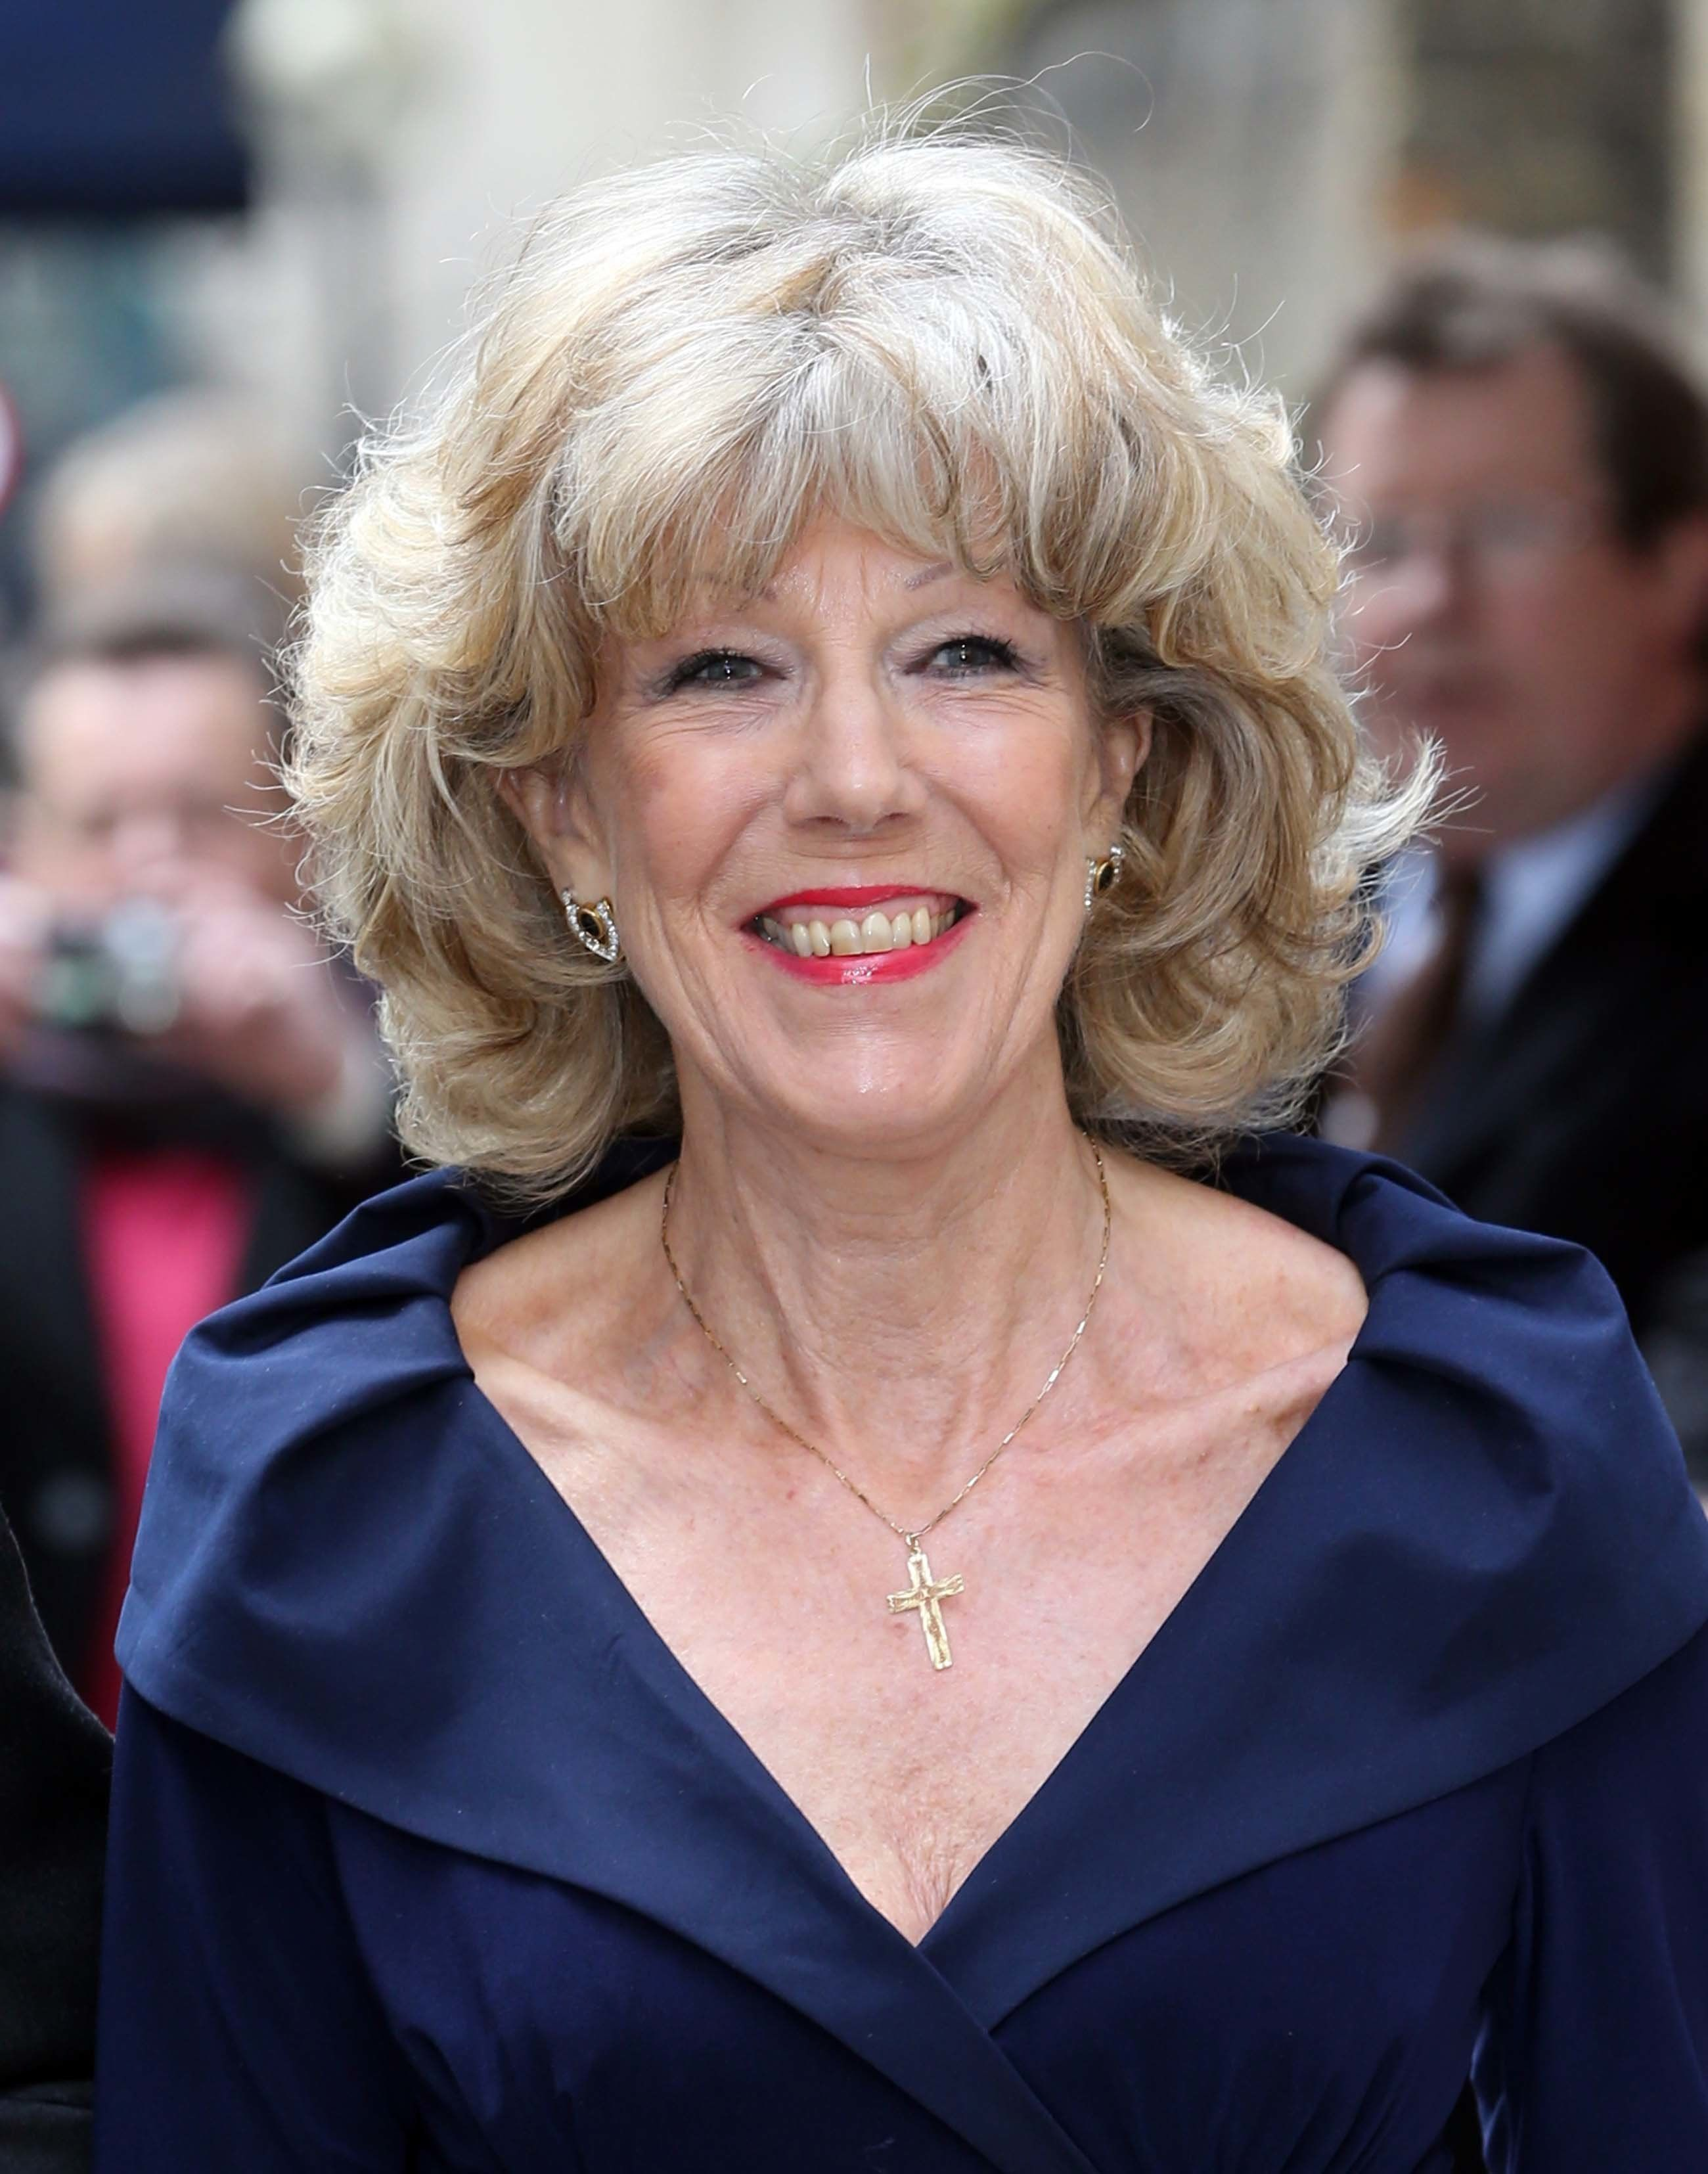 CORRIE: Sue Nicholls Explains Why She 'Didn't Agree' With Proposed 'Loneliness'